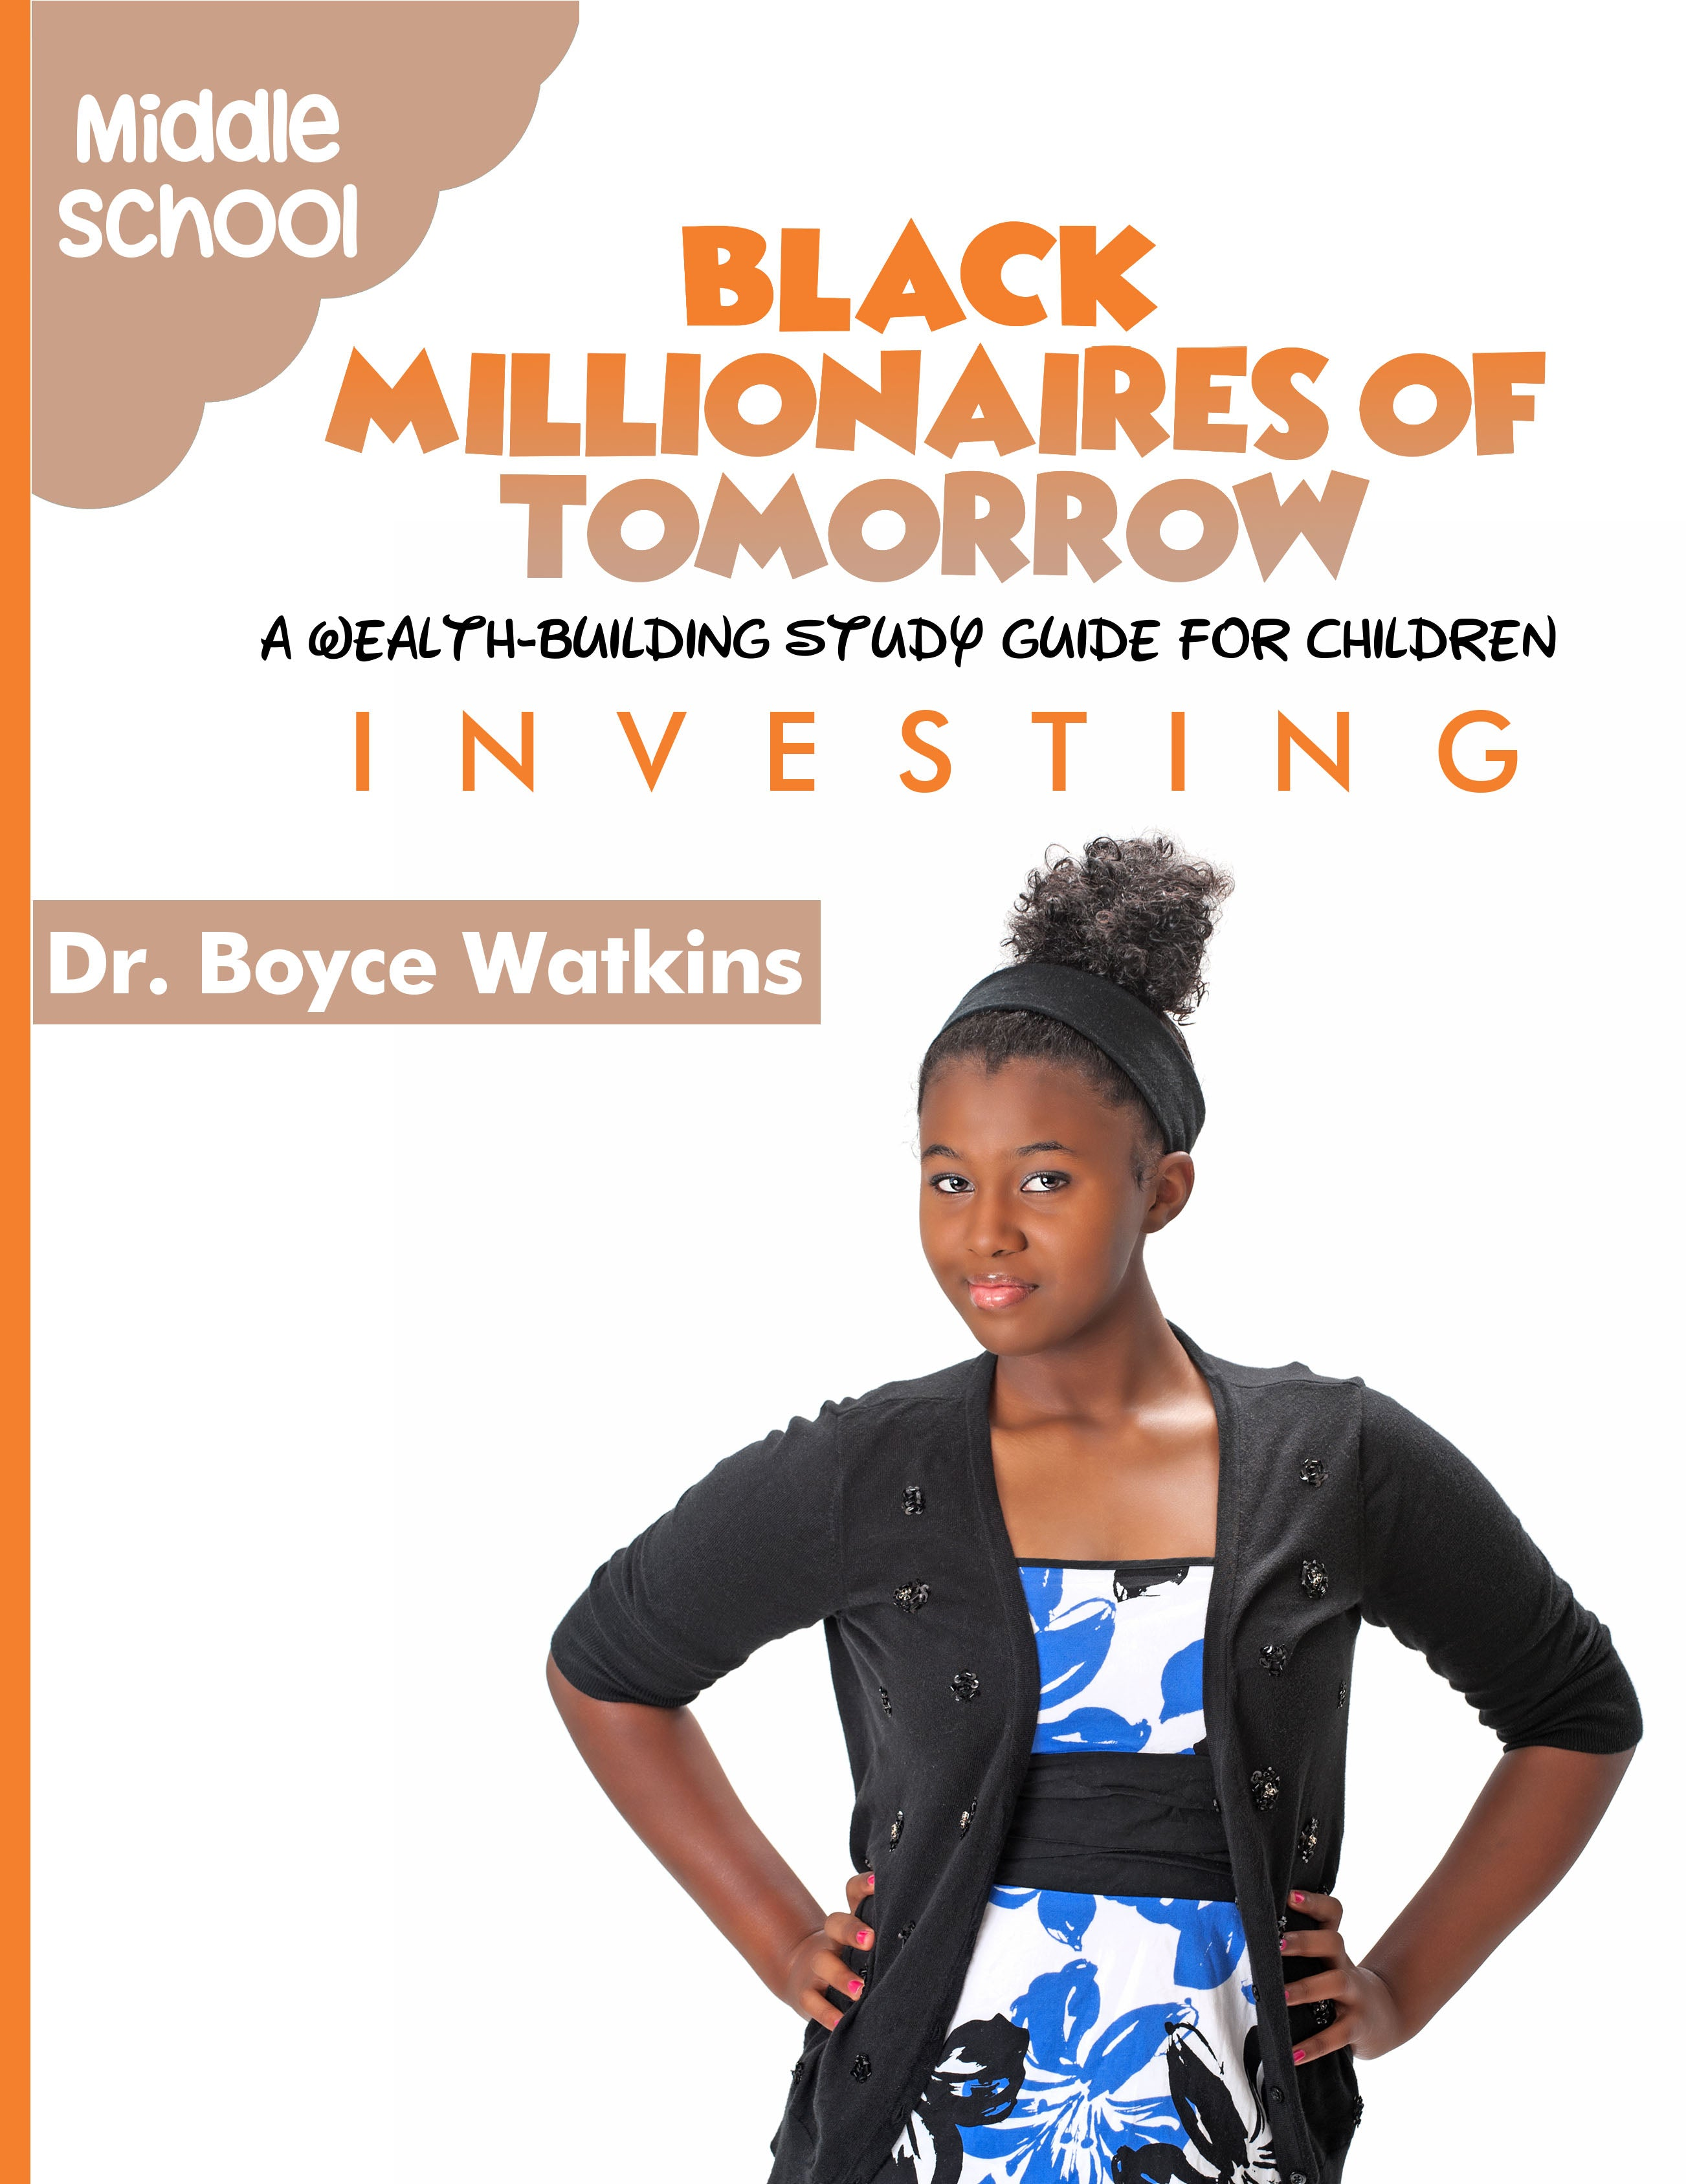 The Black Millionaires of Tomorrow Workbook (Middleschool)